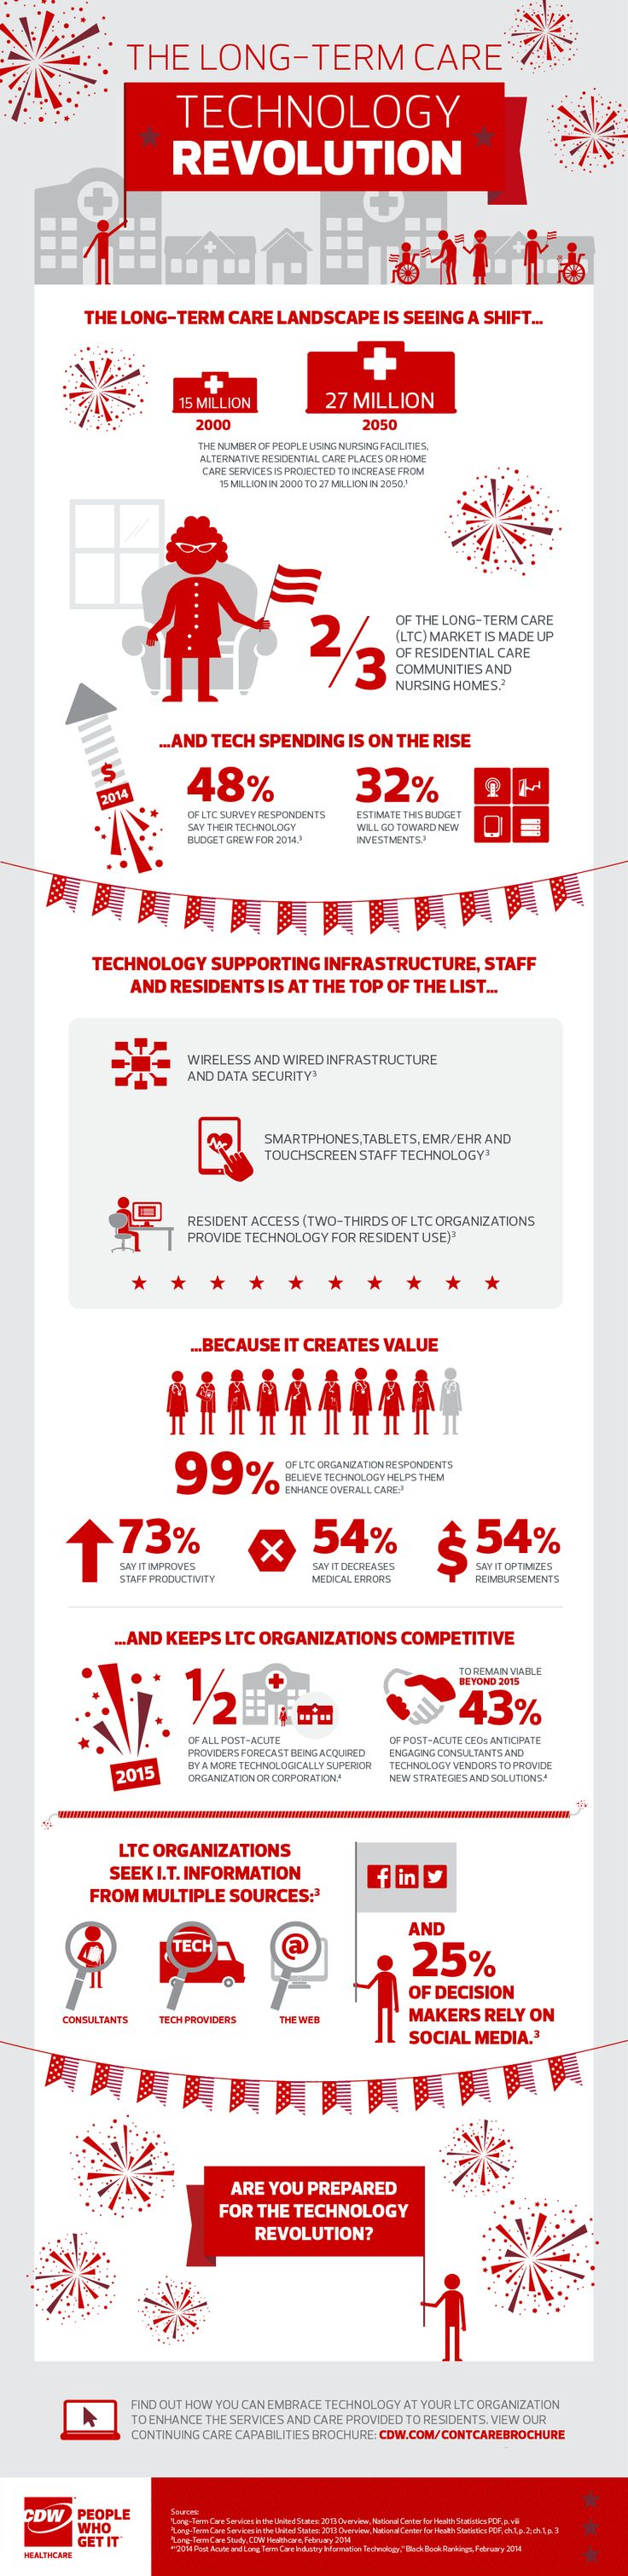 Long term care organizations are incorporating technology into their care structures to improve the resident experience and gain a competitive advantage. CDW.com/view